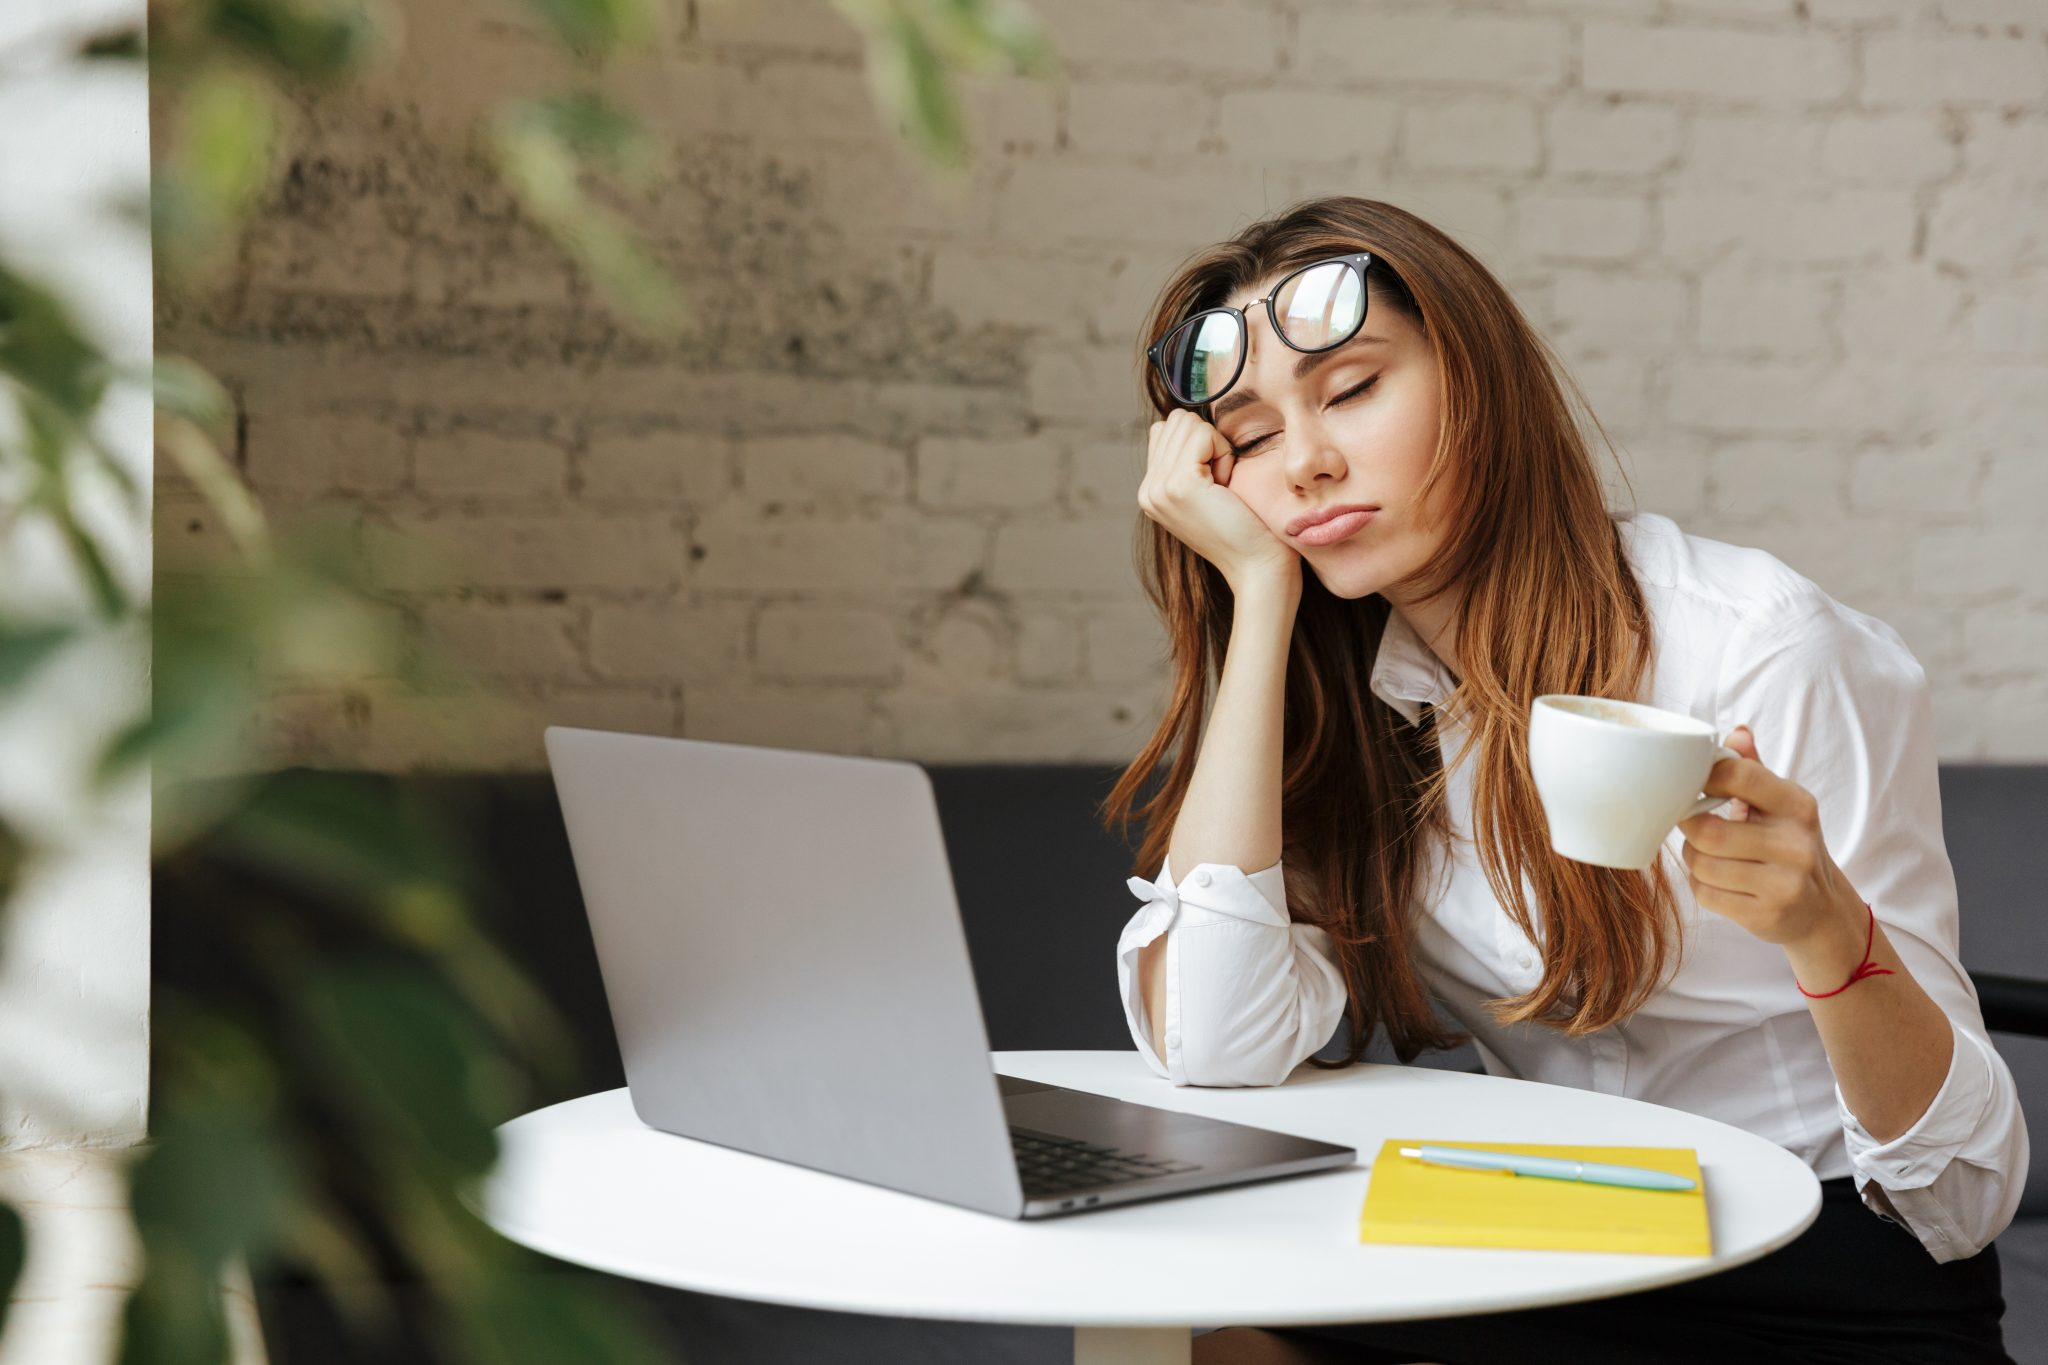 Dr. Sharona Dayan On Why We Wake Up Feeling Tired